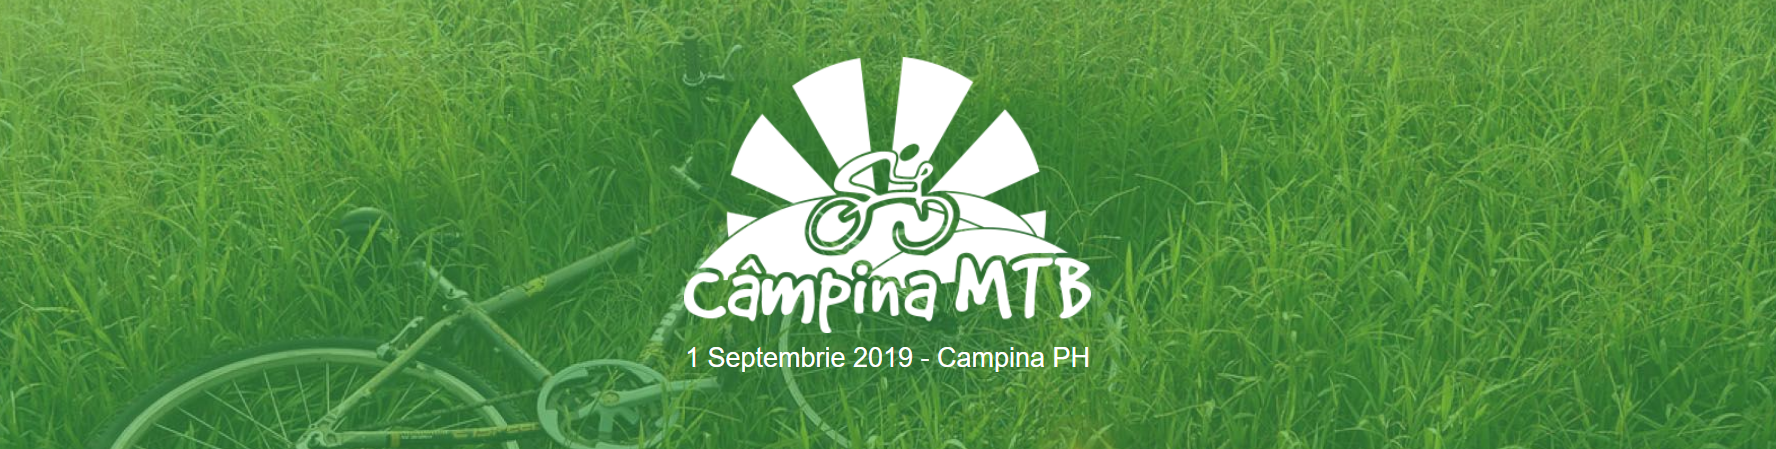 Uncategorized Campina Open Mtb